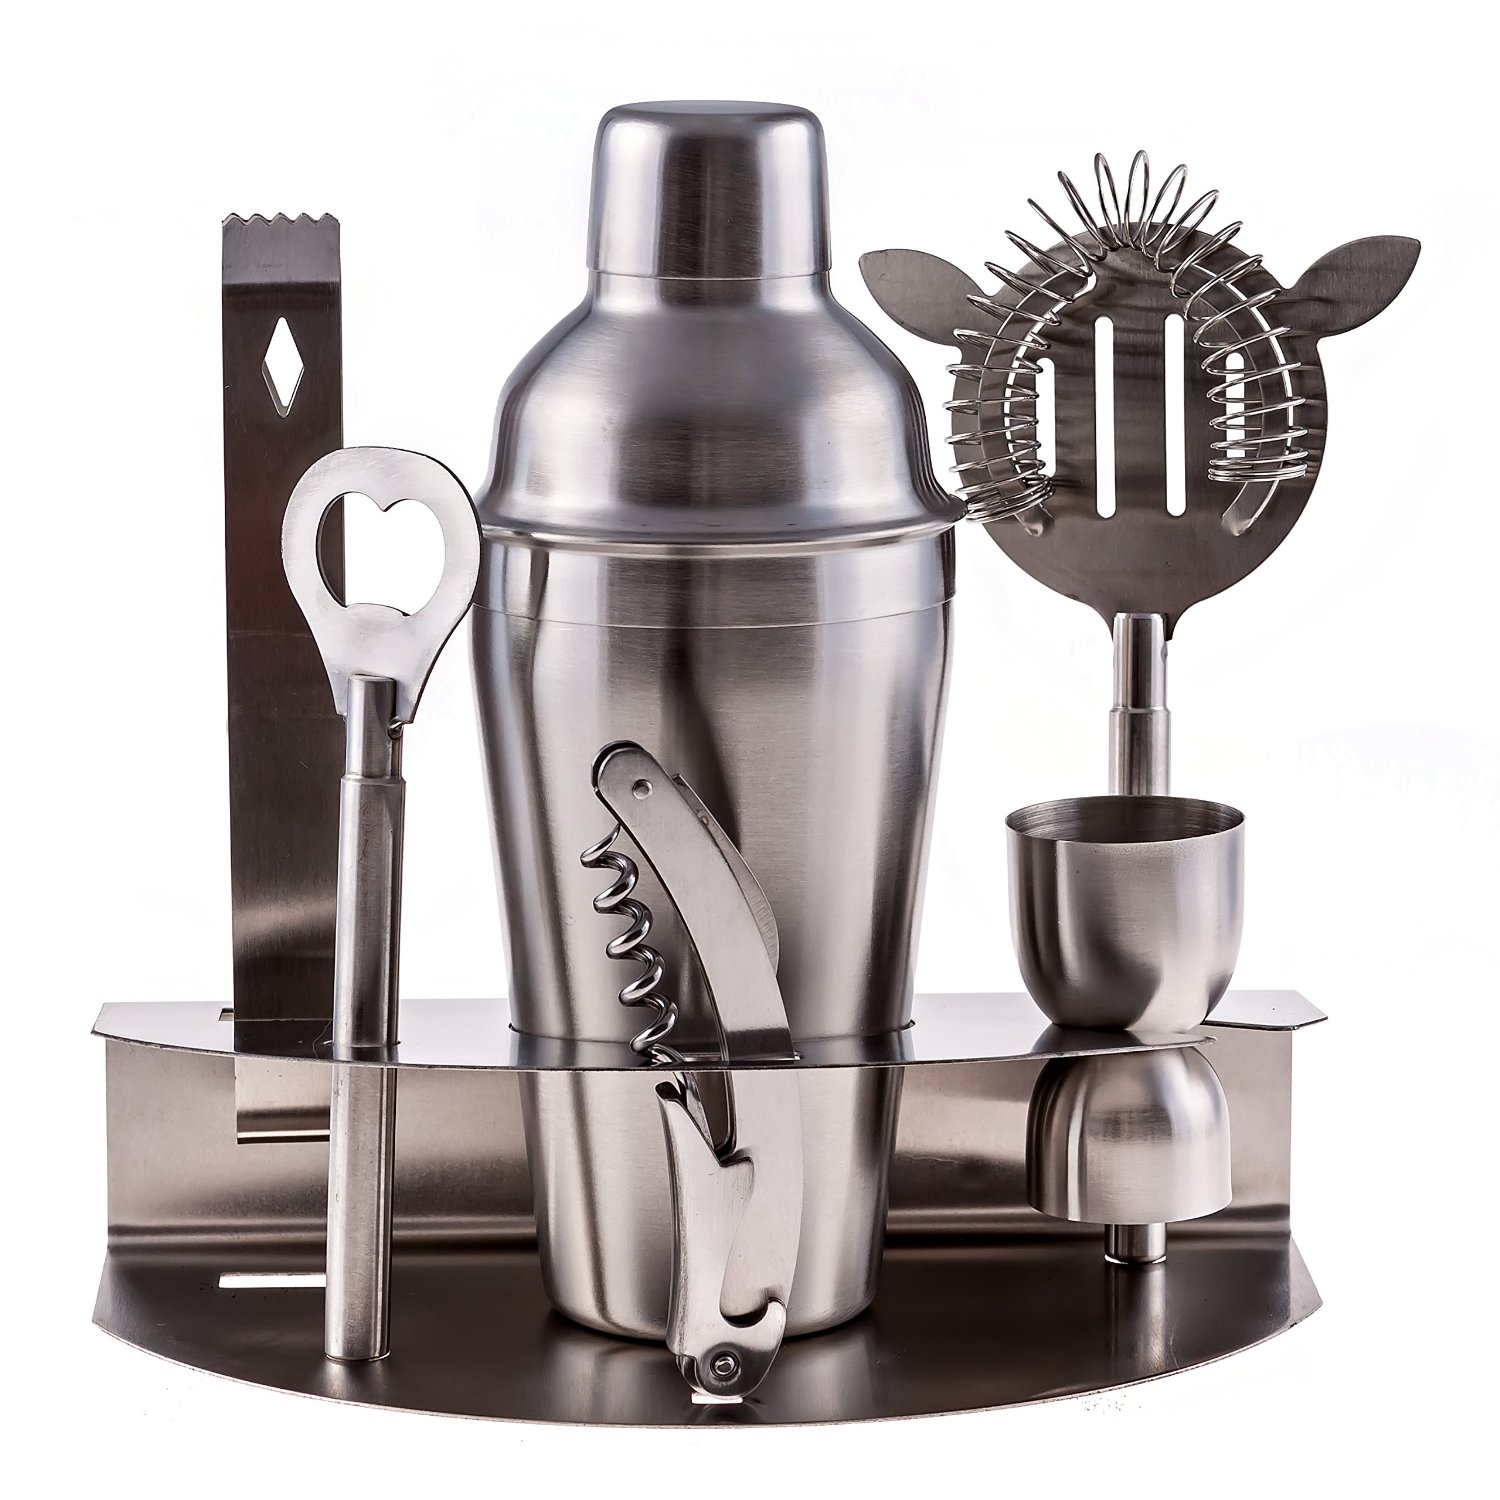 Stainless Steel Cocktail Bar Tool Set, Home Bar Essentials